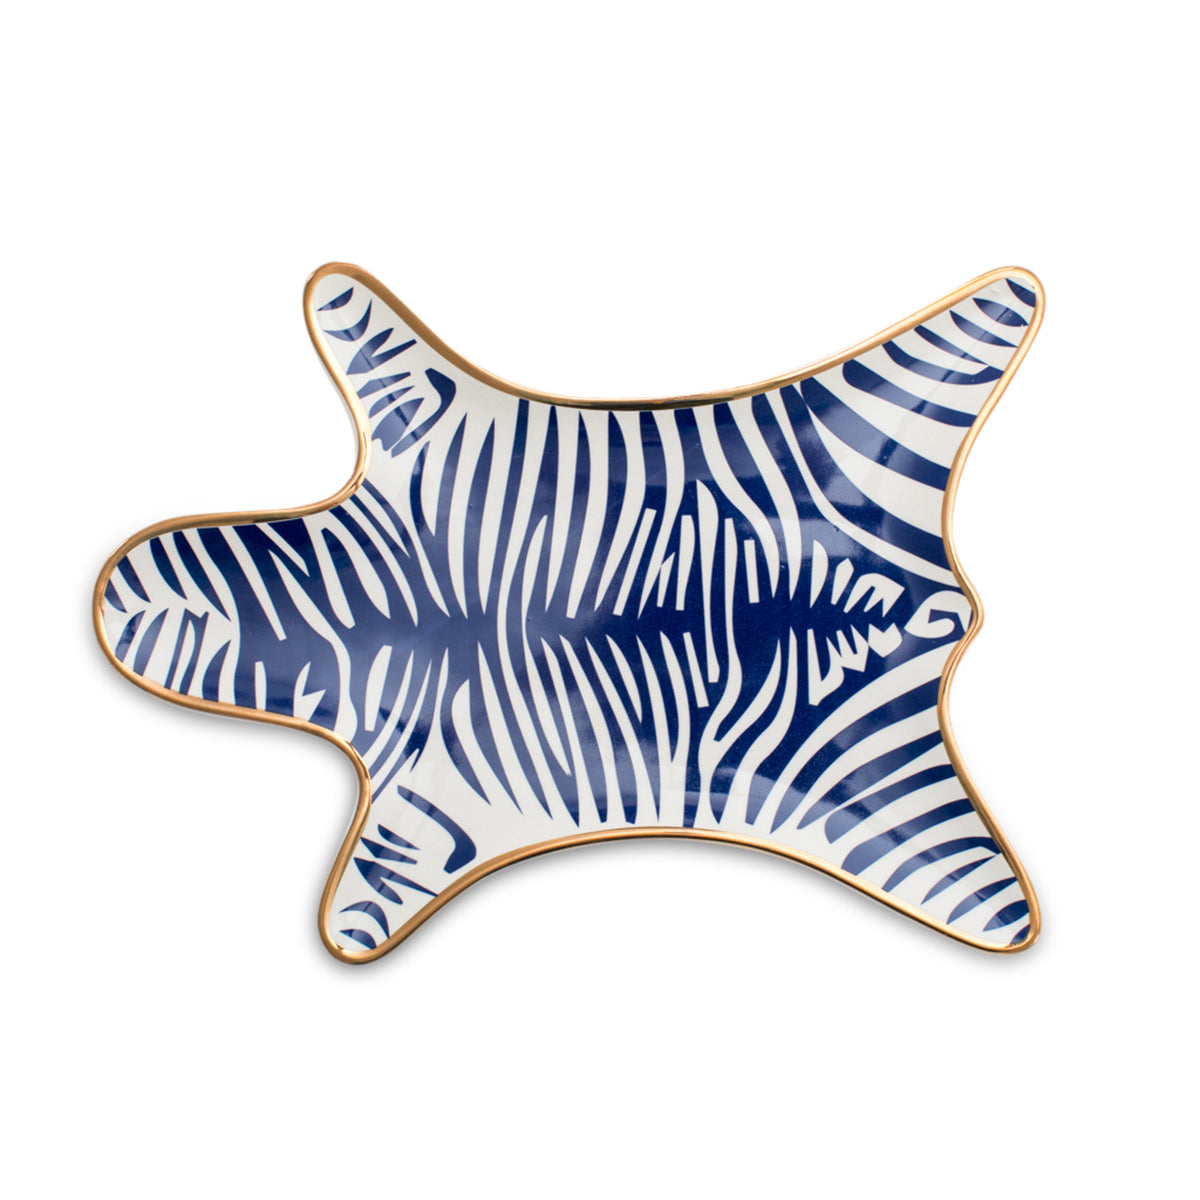 Furbish Studio - Zebra Porcelain Trinket or Jewelry Tray in cobalt blue with gold edges